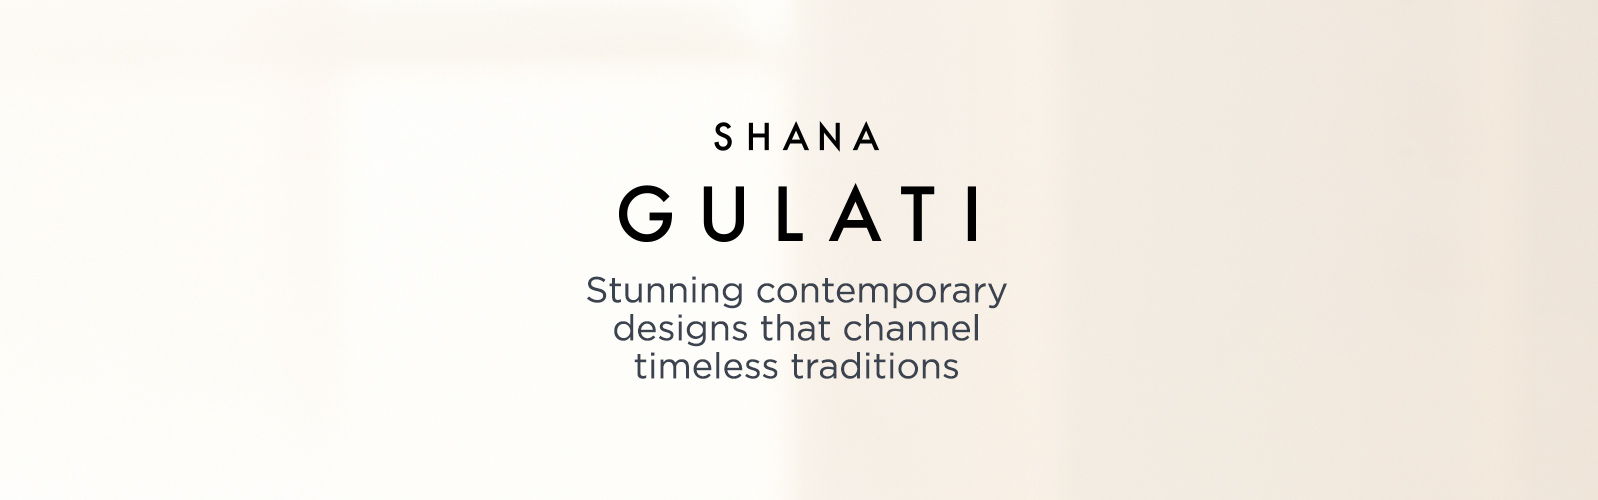 Shana Gulati. Stunning contemporary designs that channel timeless traditions.